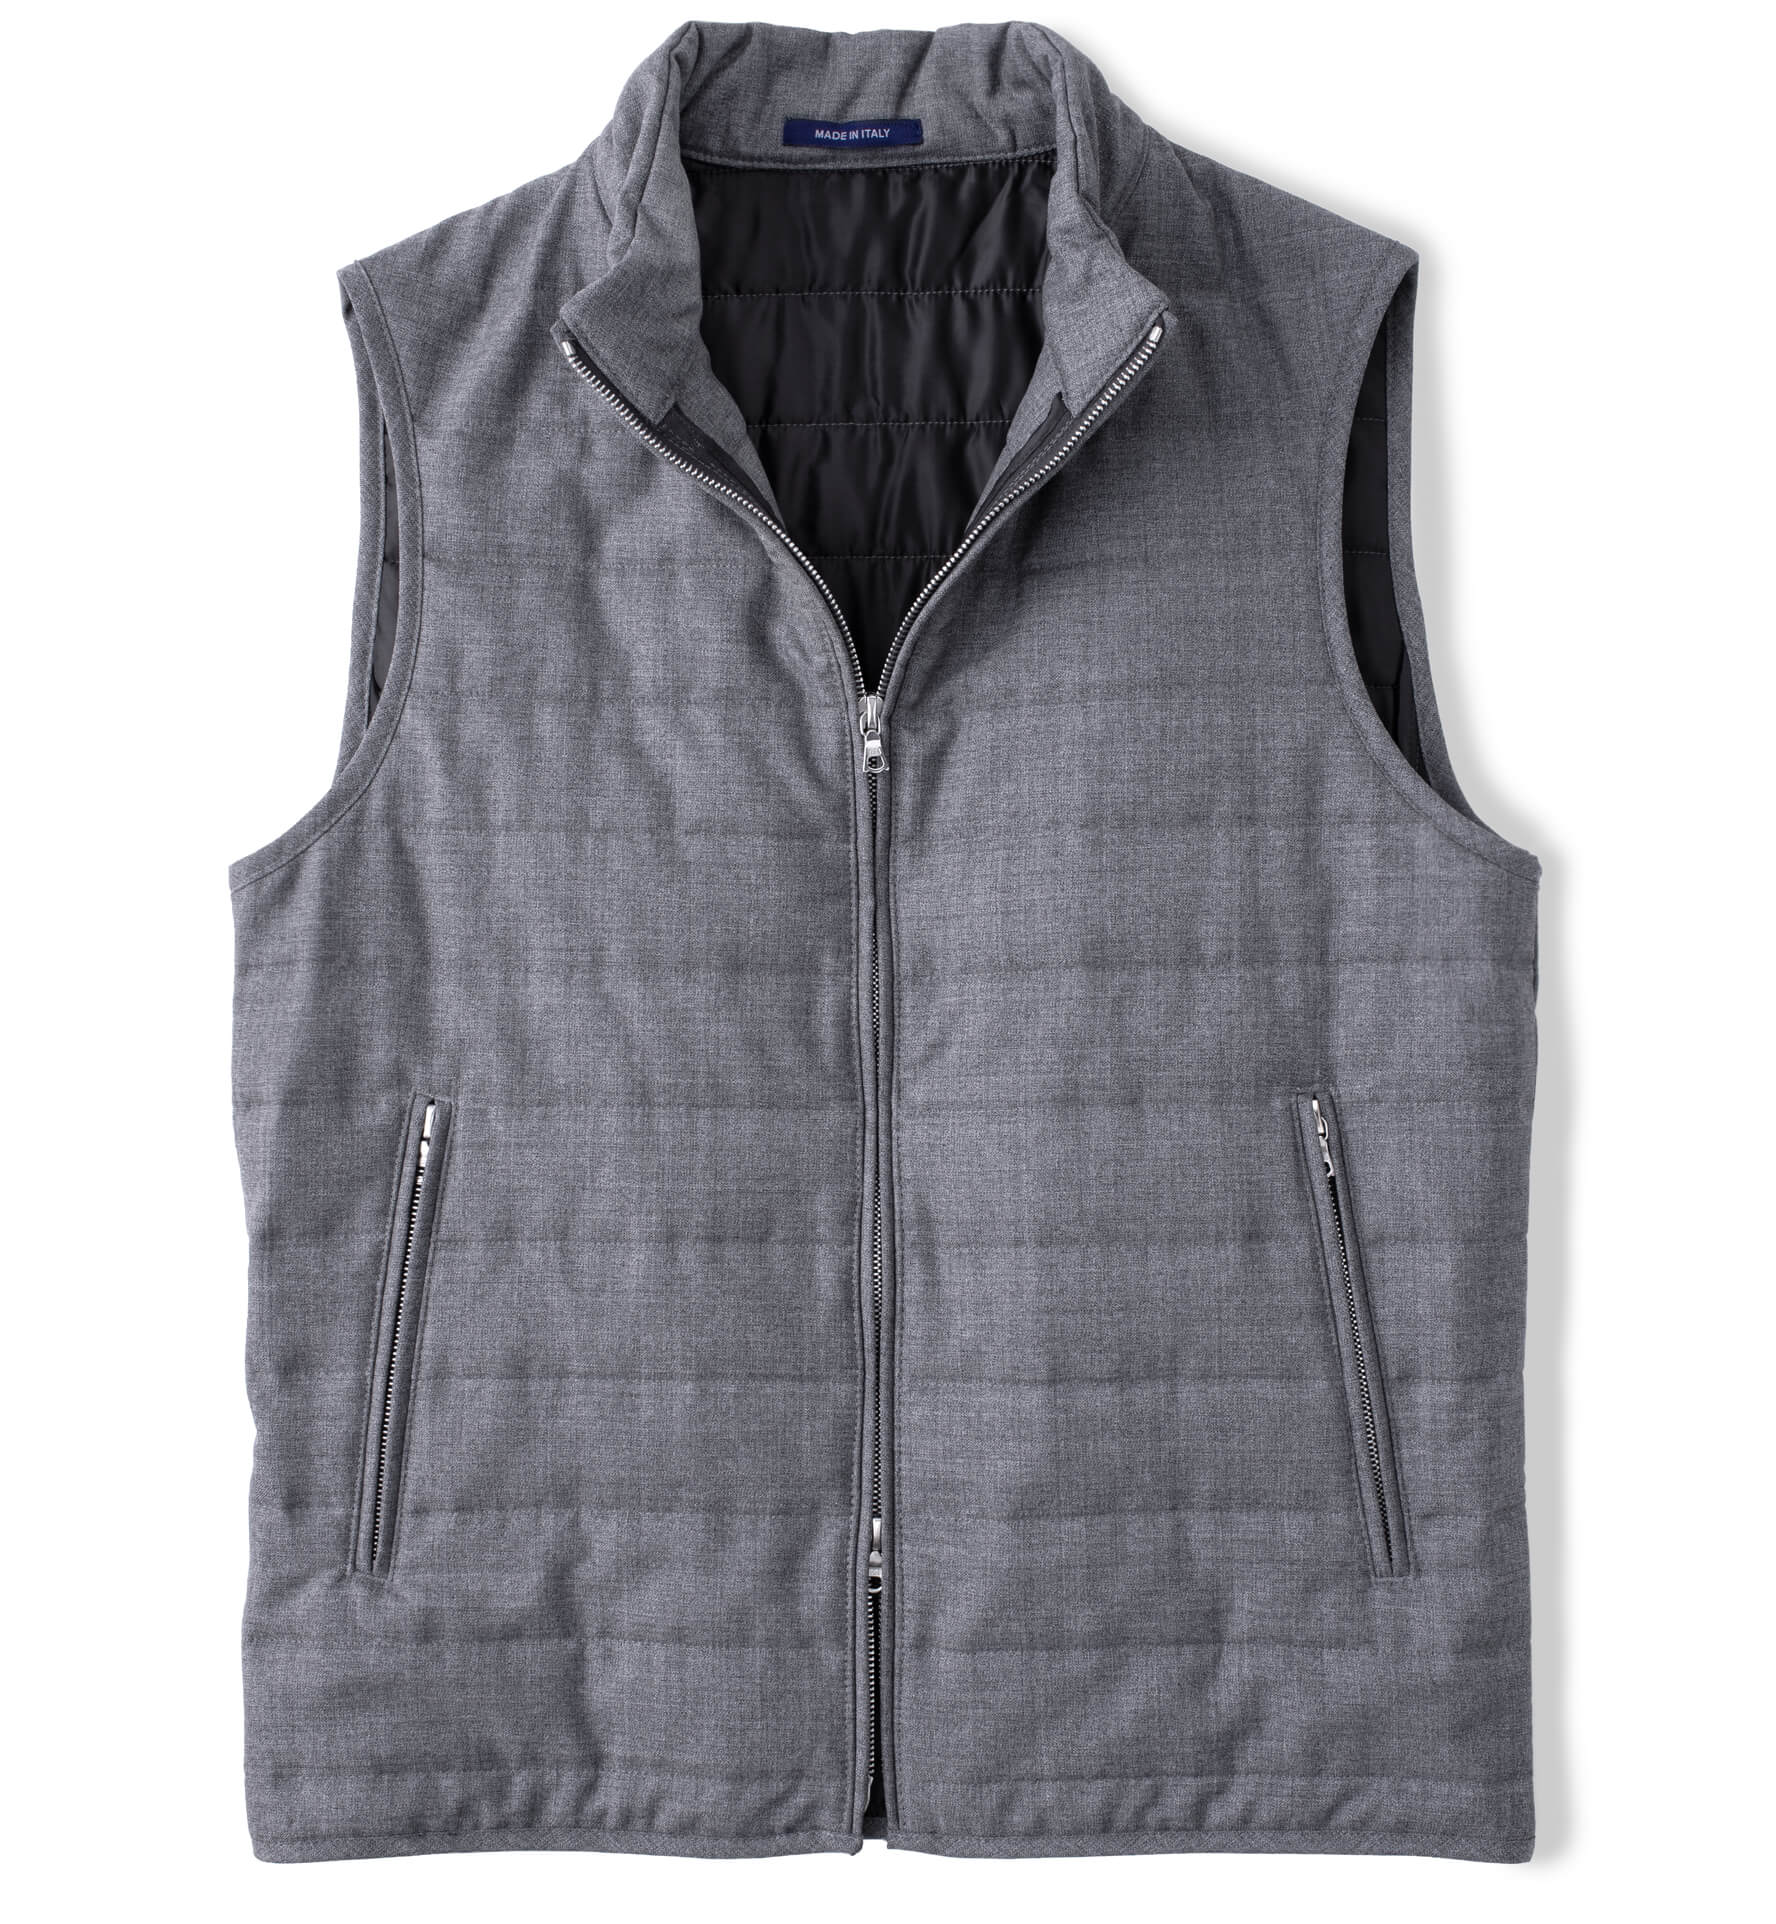 Zoom Image of Brera Grey Lightweight Wool Zip Vest